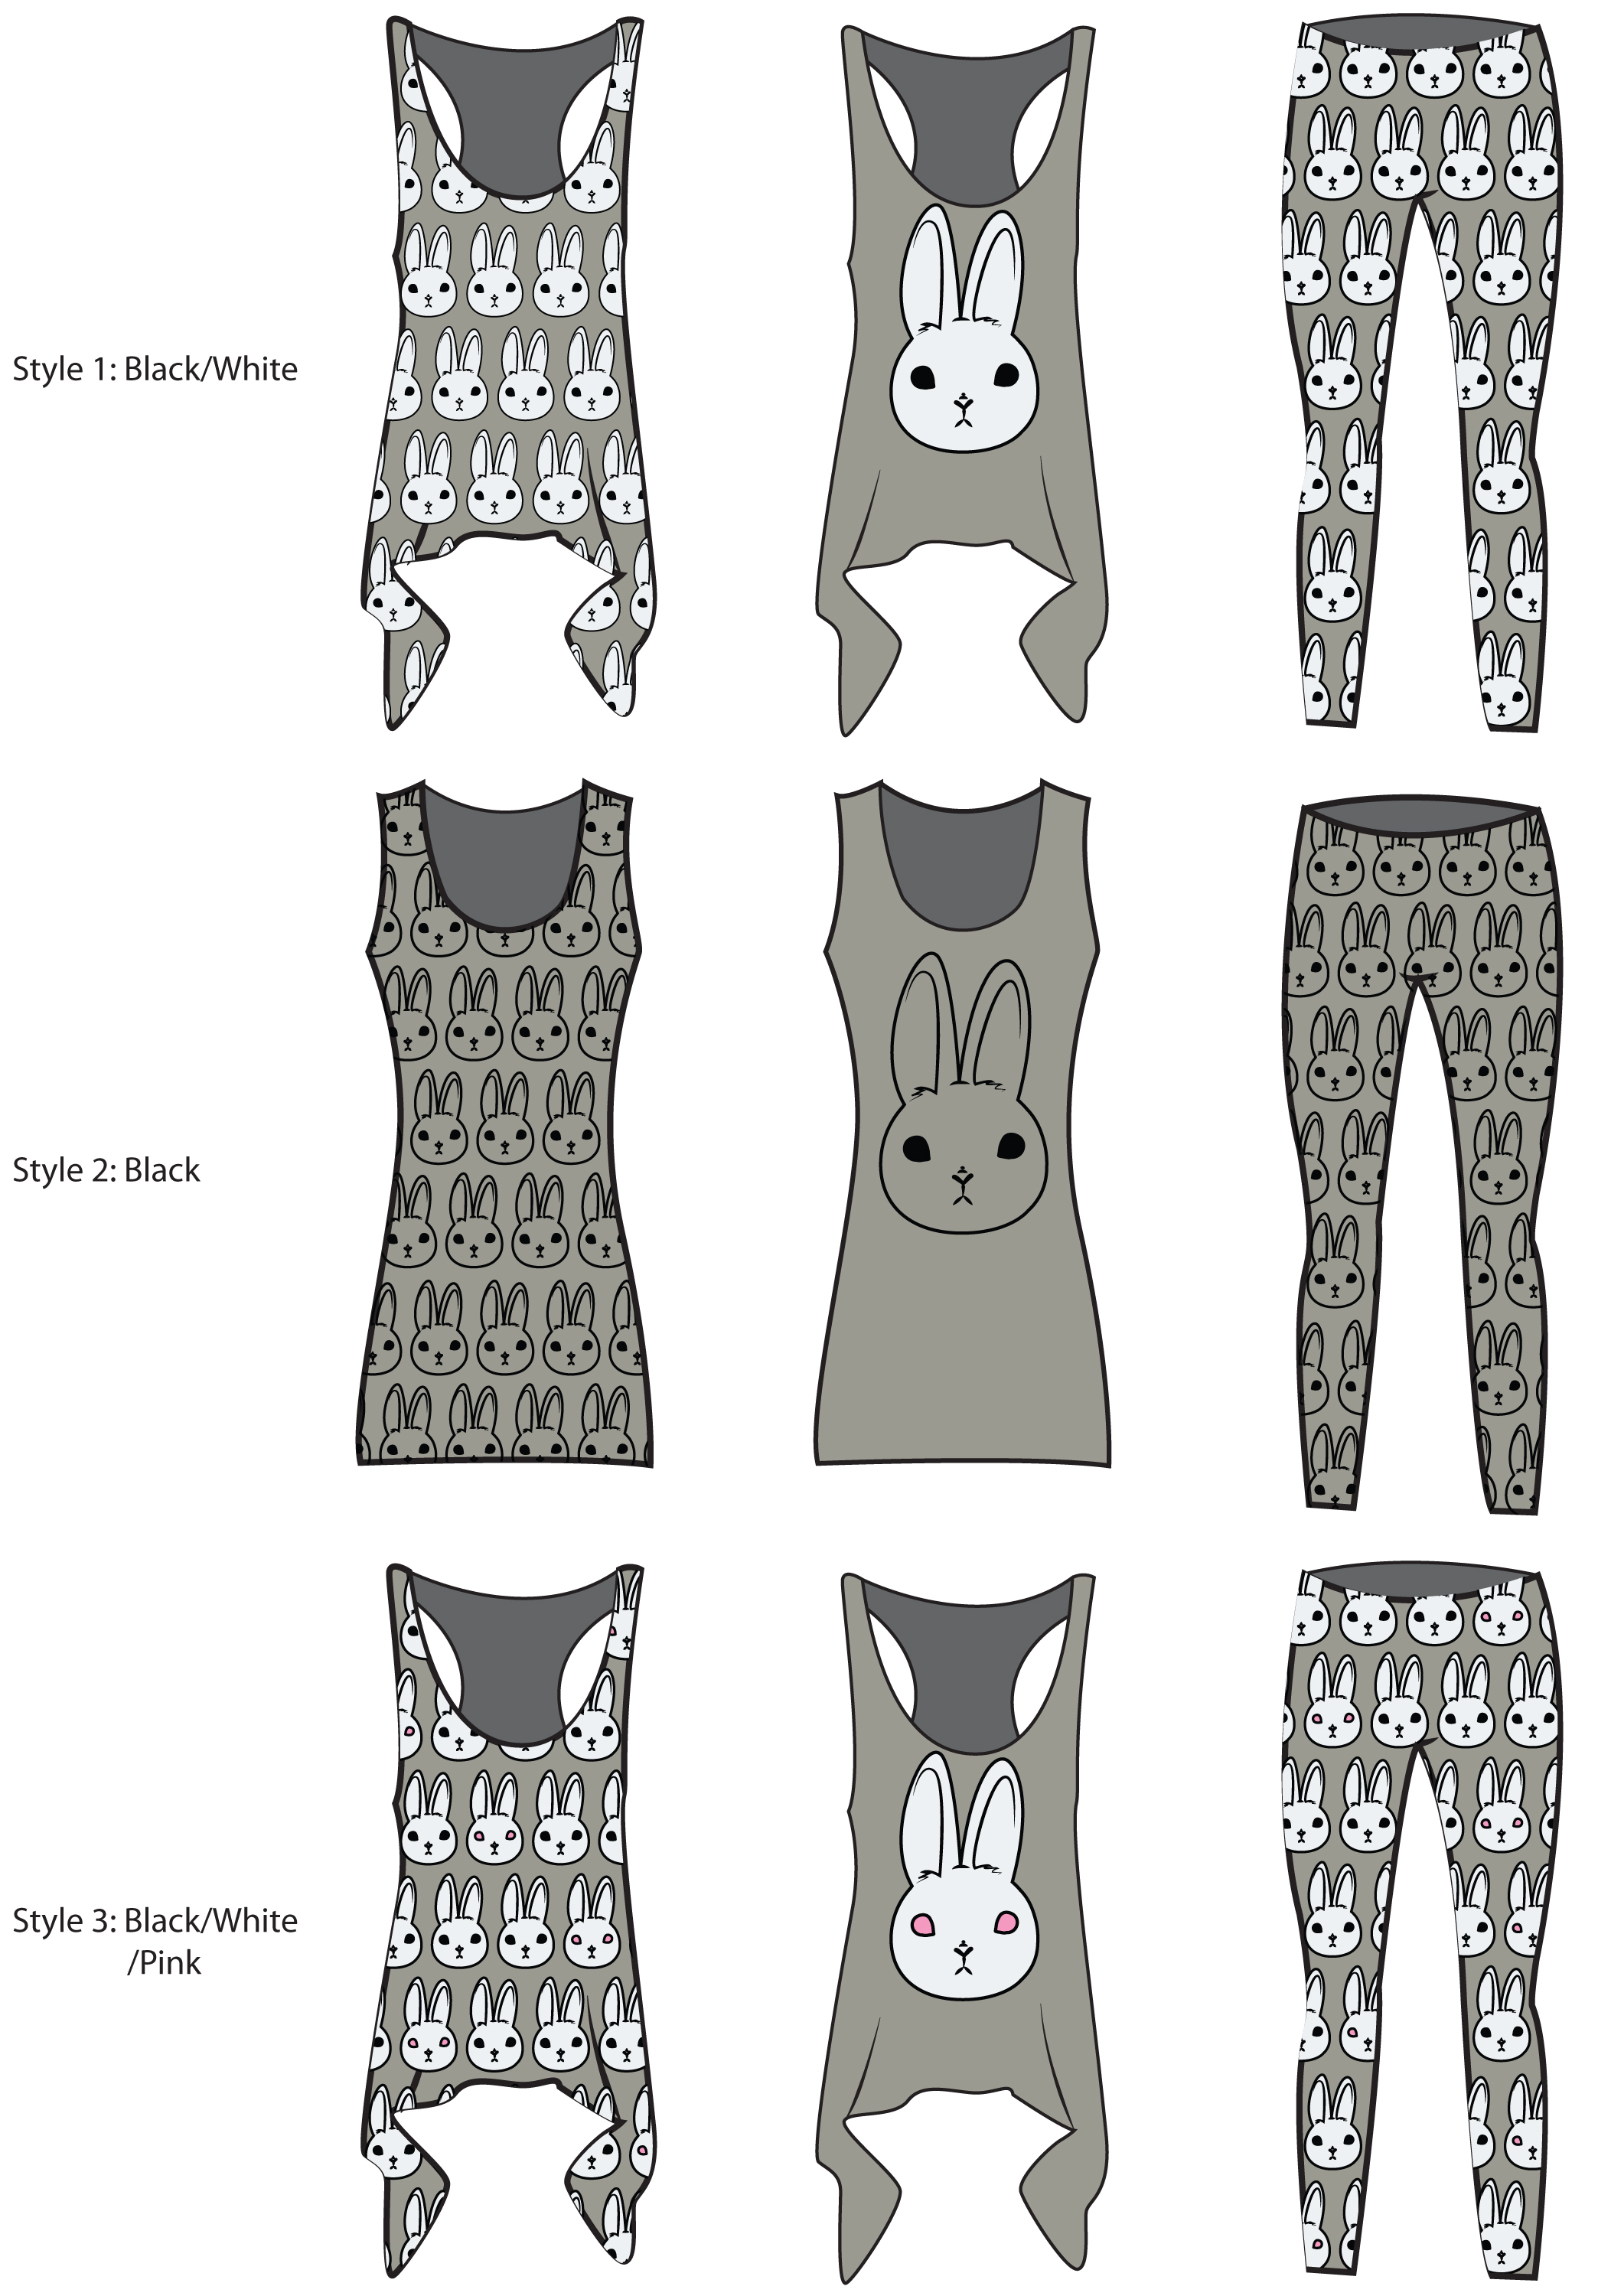 Vision Board: Bunny Apparel